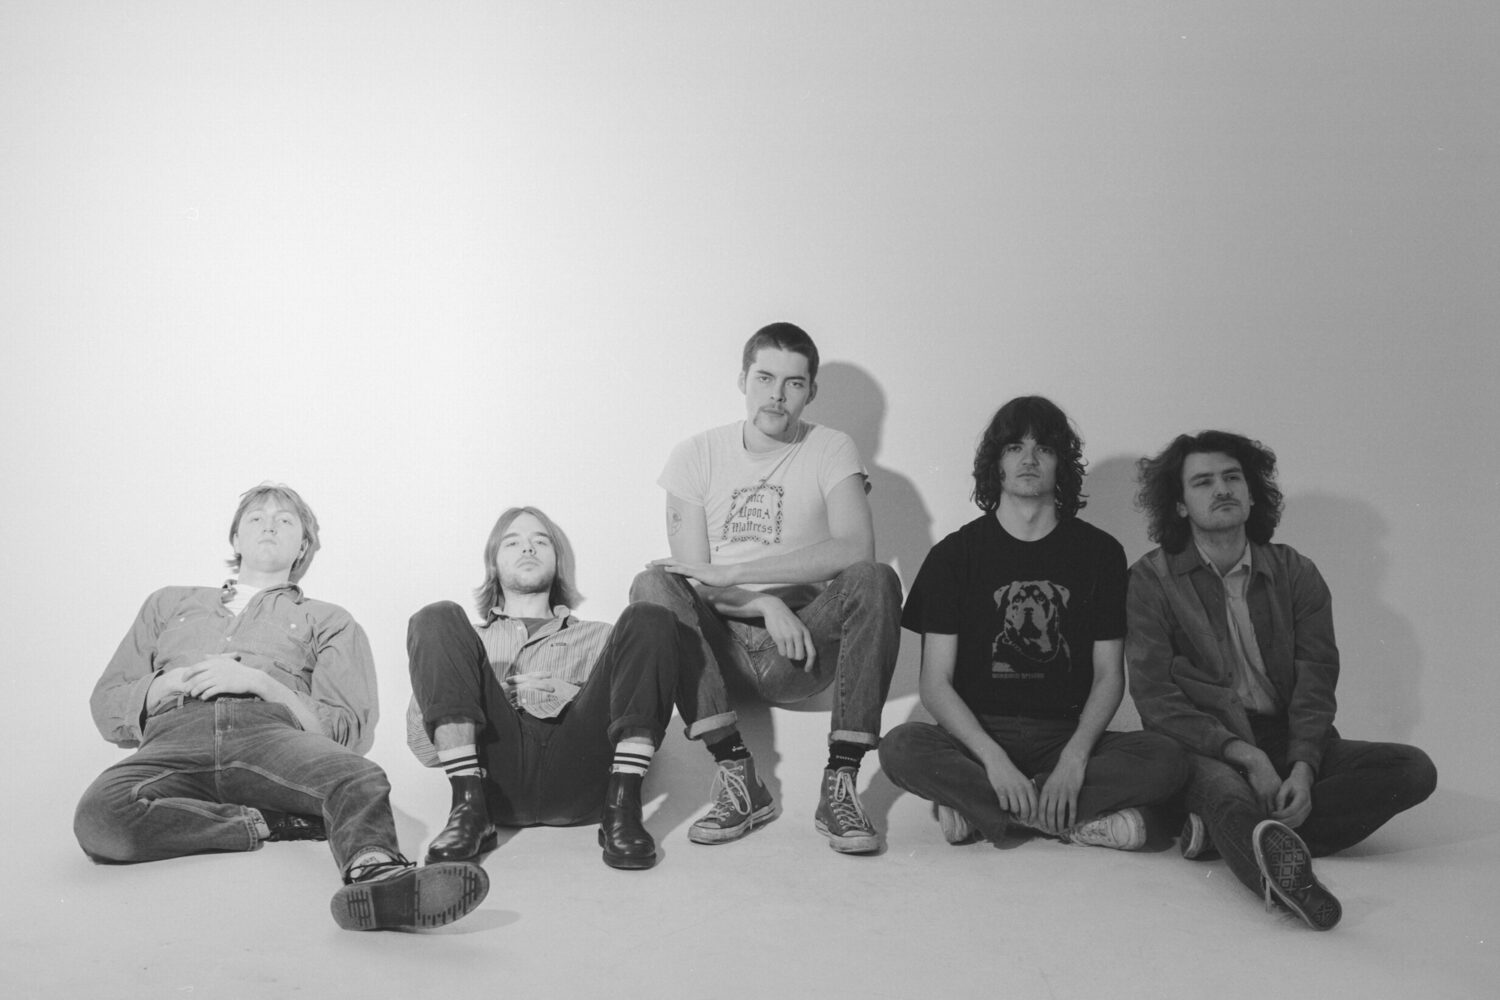 FEET announce new EP 'Walking Machine'